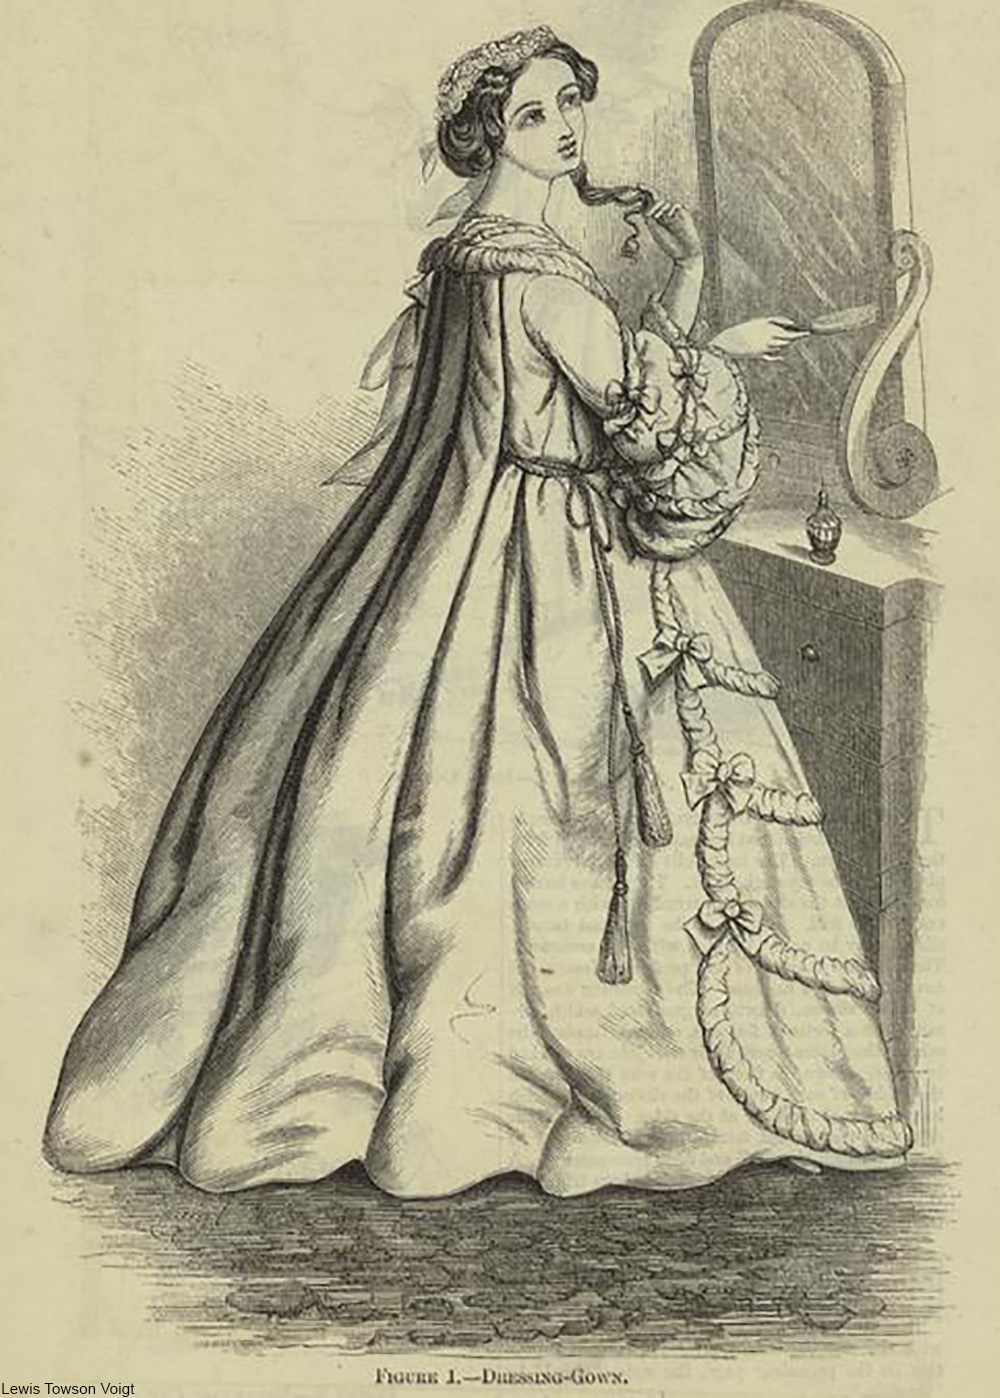 fashion illustration from 1860 showing an elaborate dressing gown